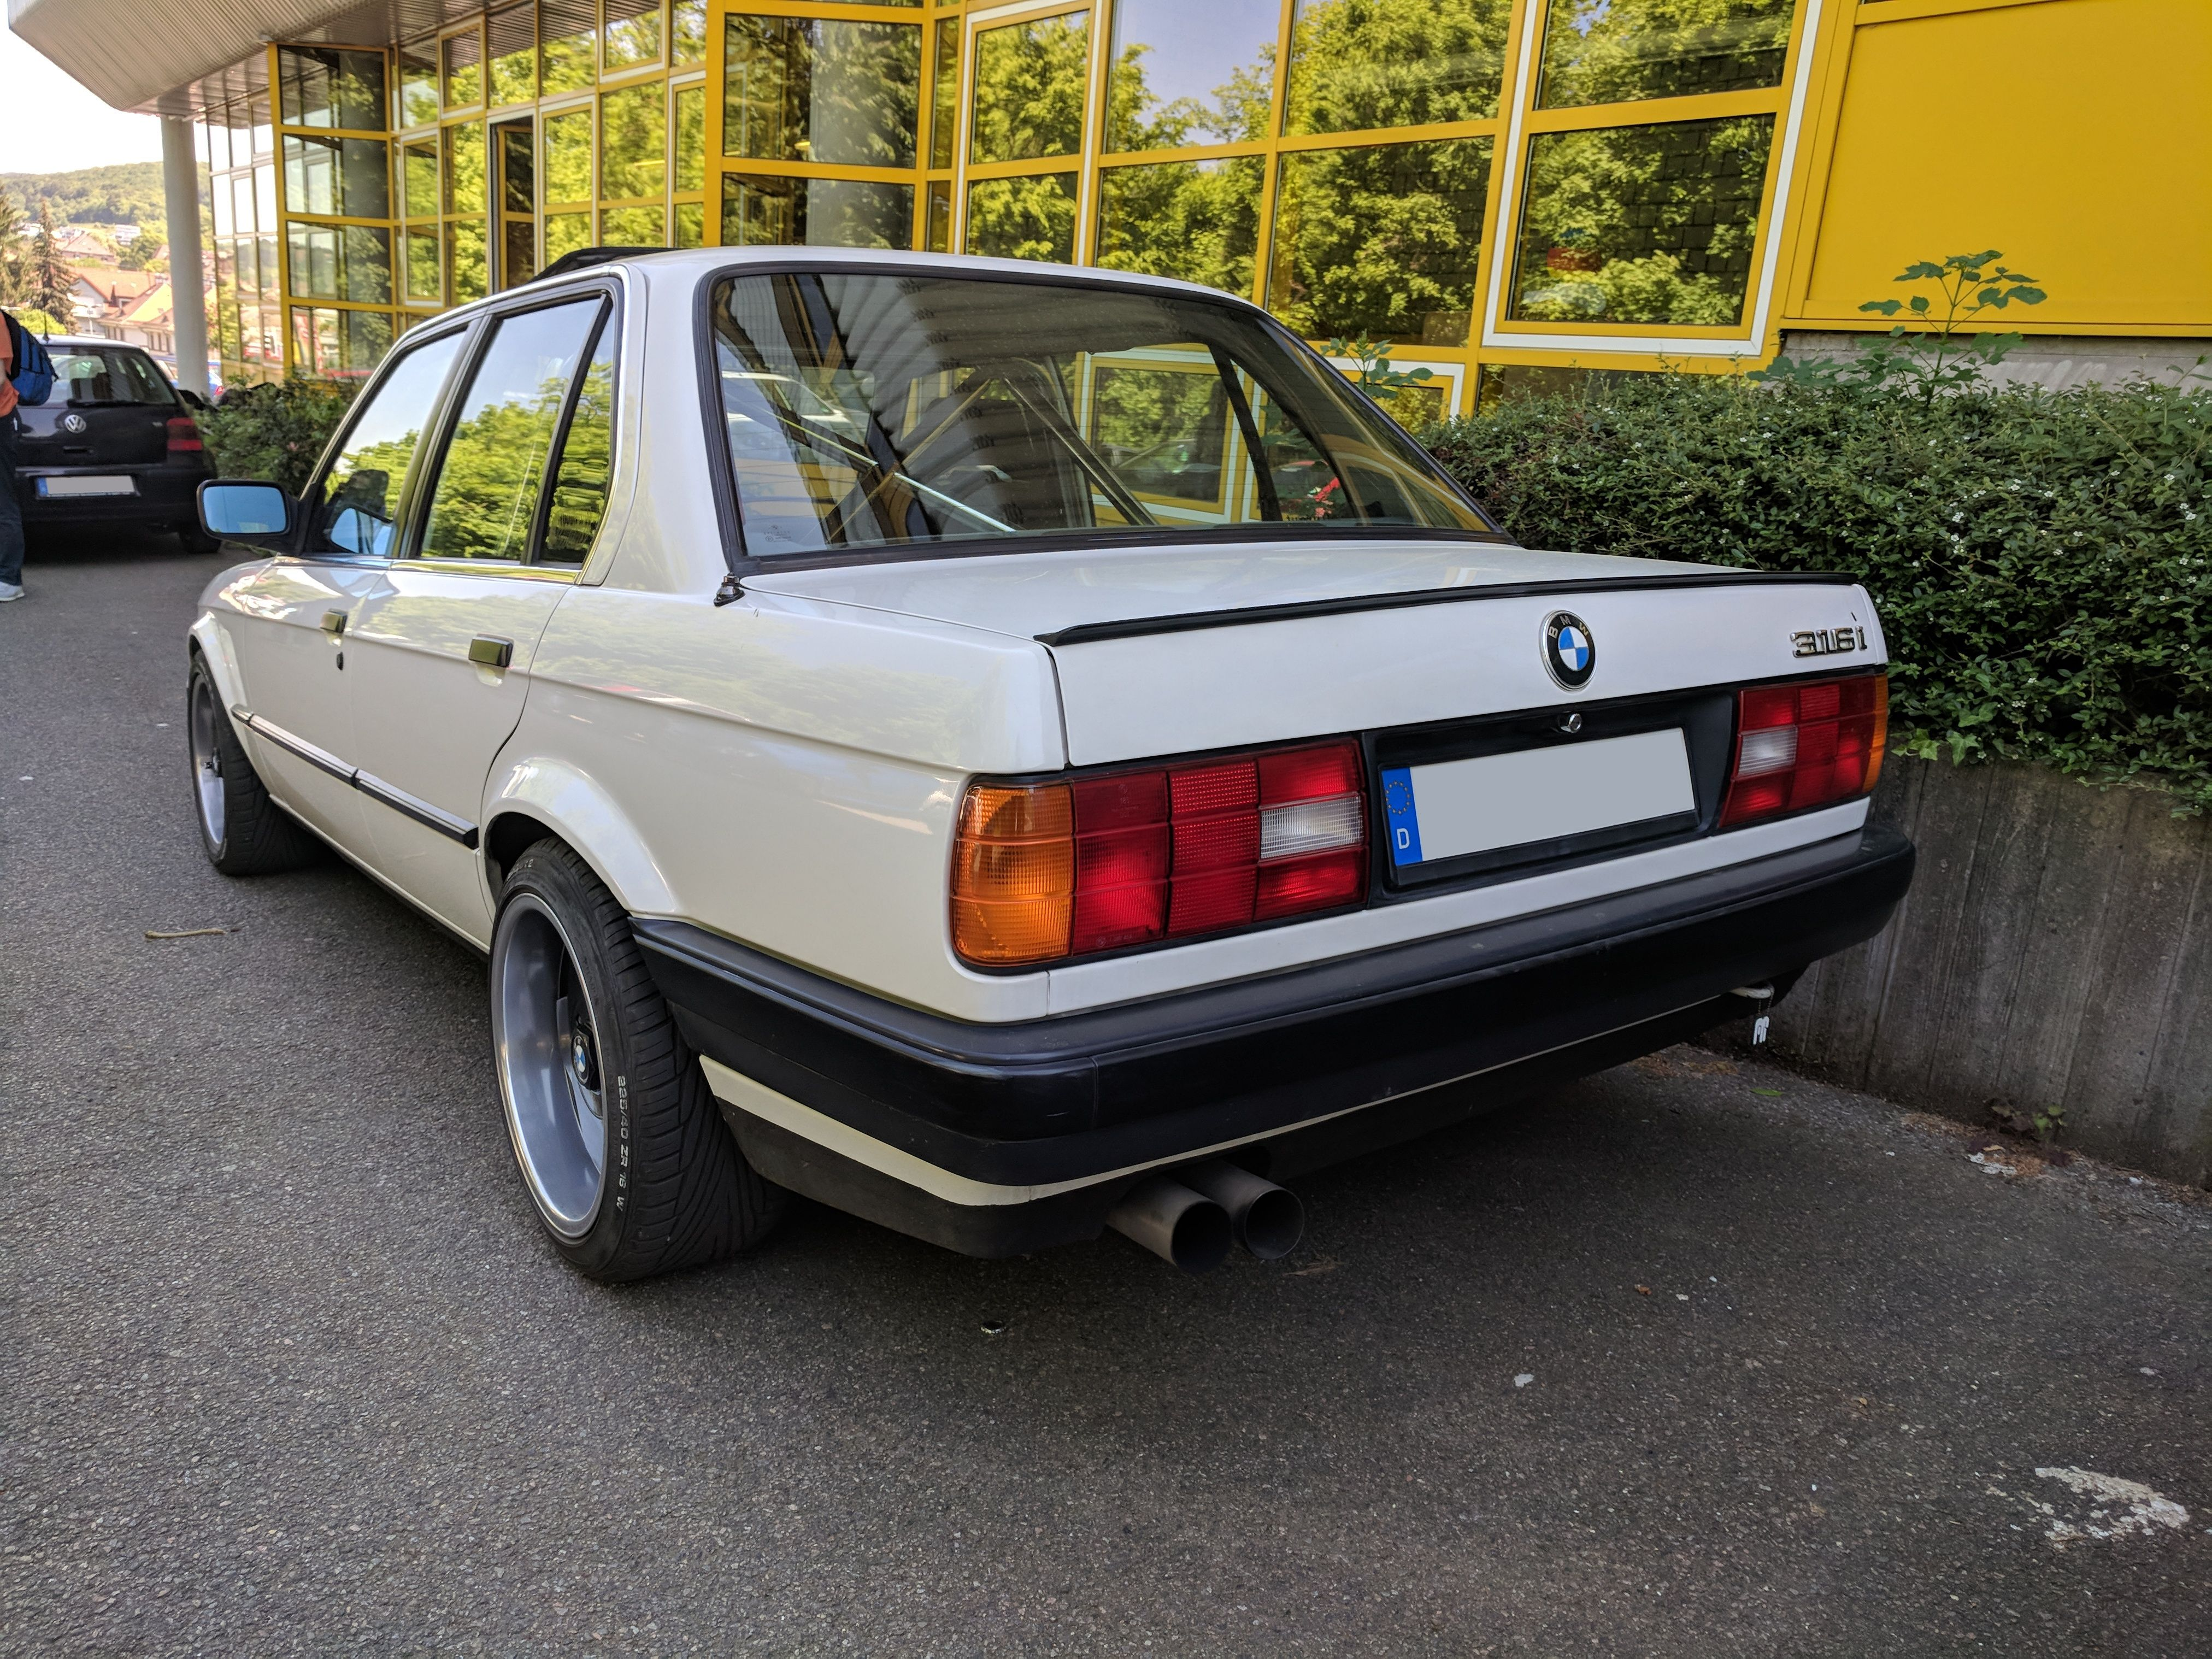 Saw this mint E30 316i with a roll cage at a nearby school